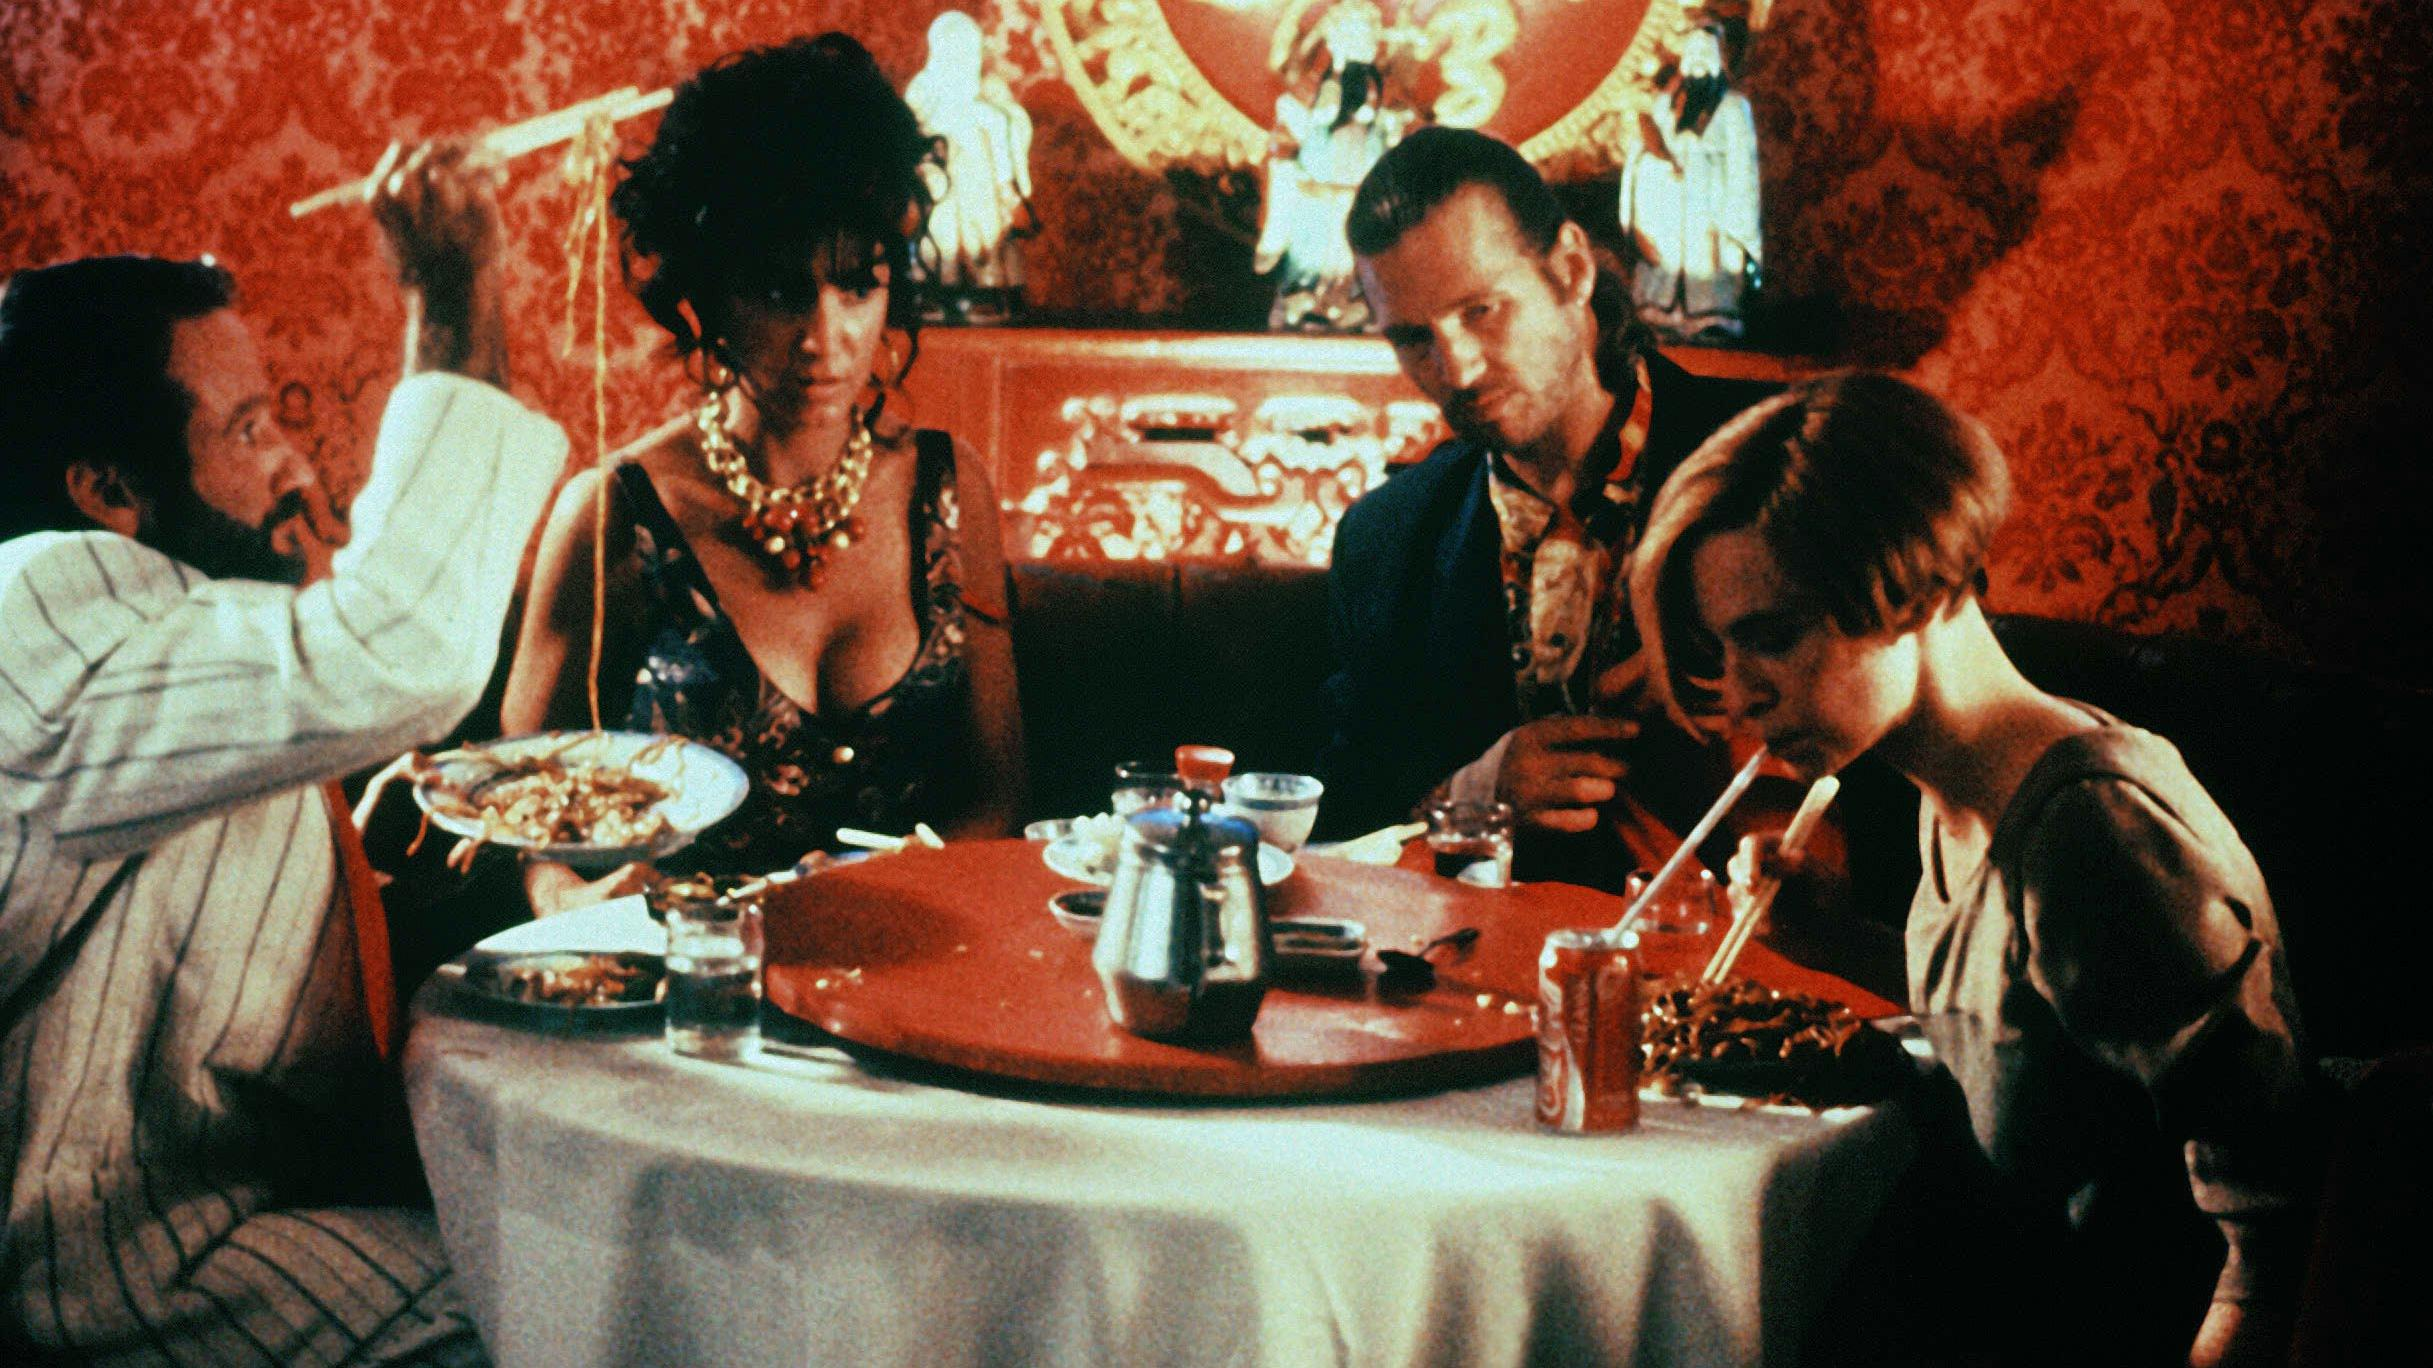 The dinner party scene - (l to r) Robin Williams, Mercedes Ruehl, Jeff Bridges and Amanda Plummer in The Fisher King (1991)